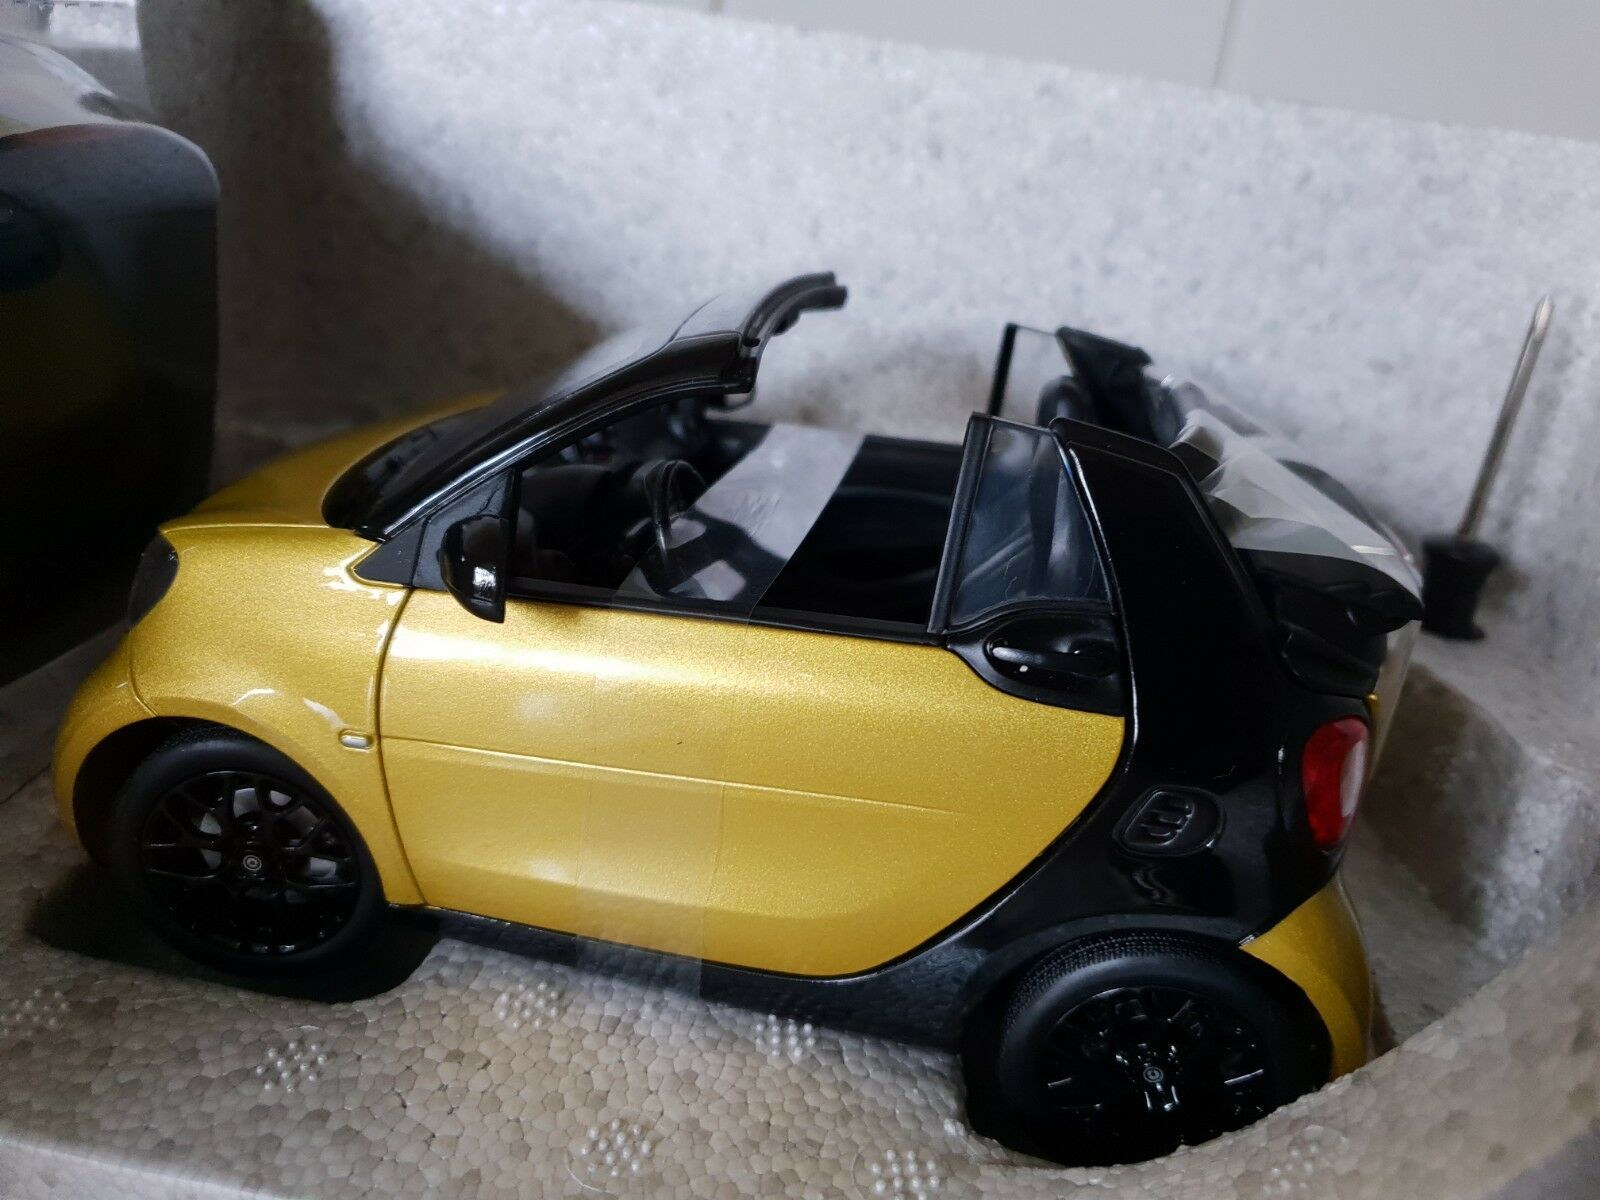 NOREV  -  SMART FORTWO CABRIO - - - METALIC YELLOW  - 1 18 SCALE MODEL- B6 696 0289 9f5afa